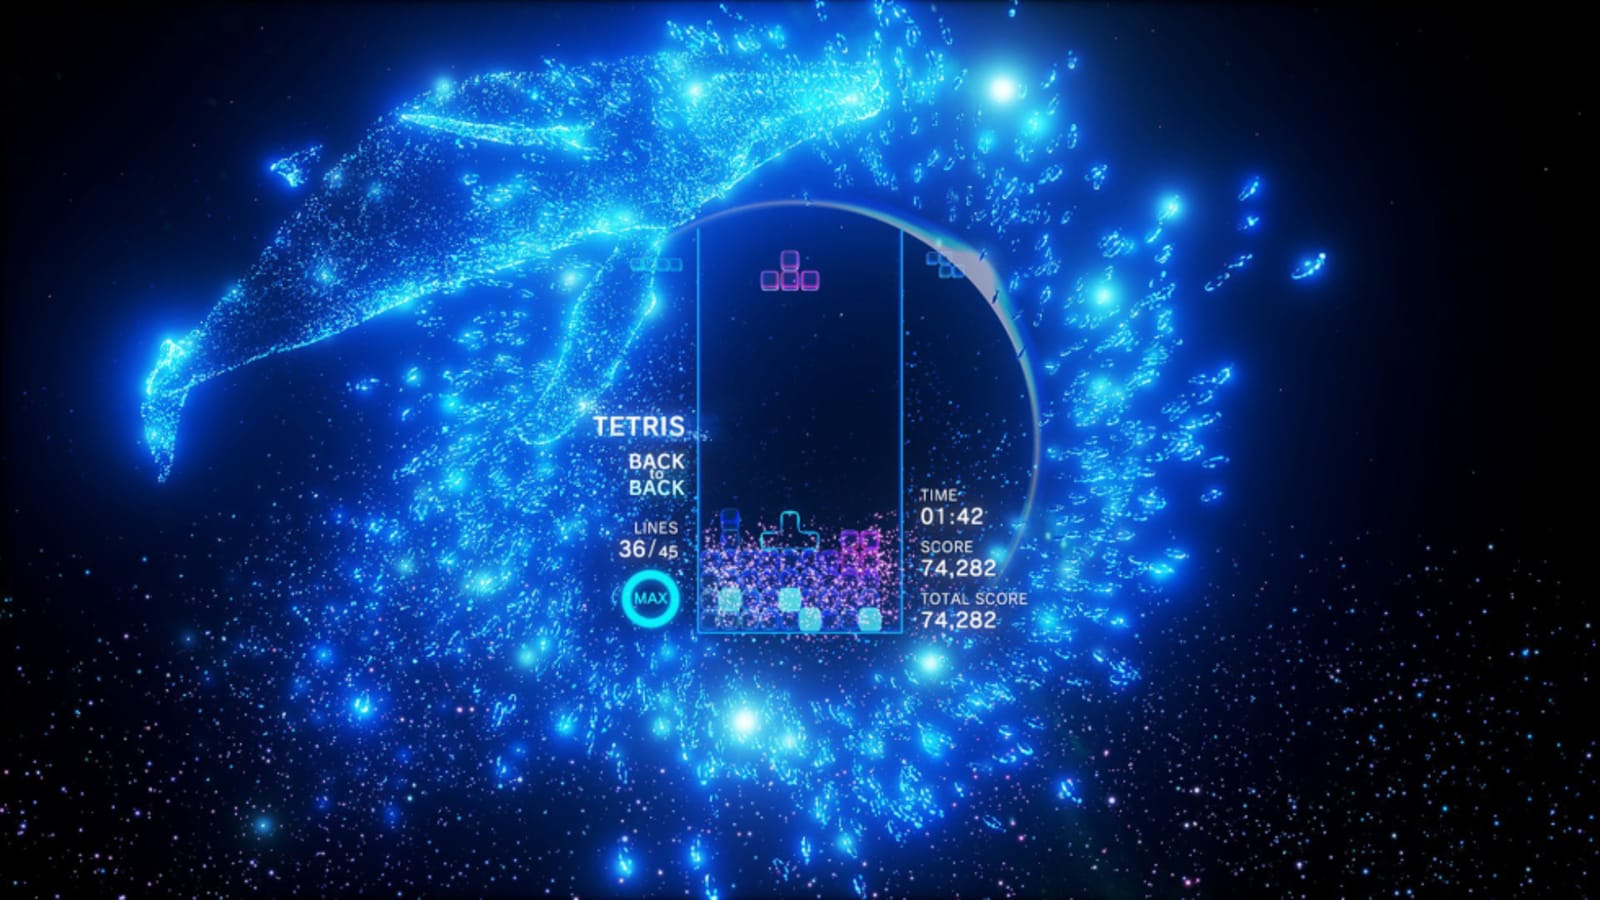 Tetris Effect' brings its VR head trip to PCs on July 23rd | Go to